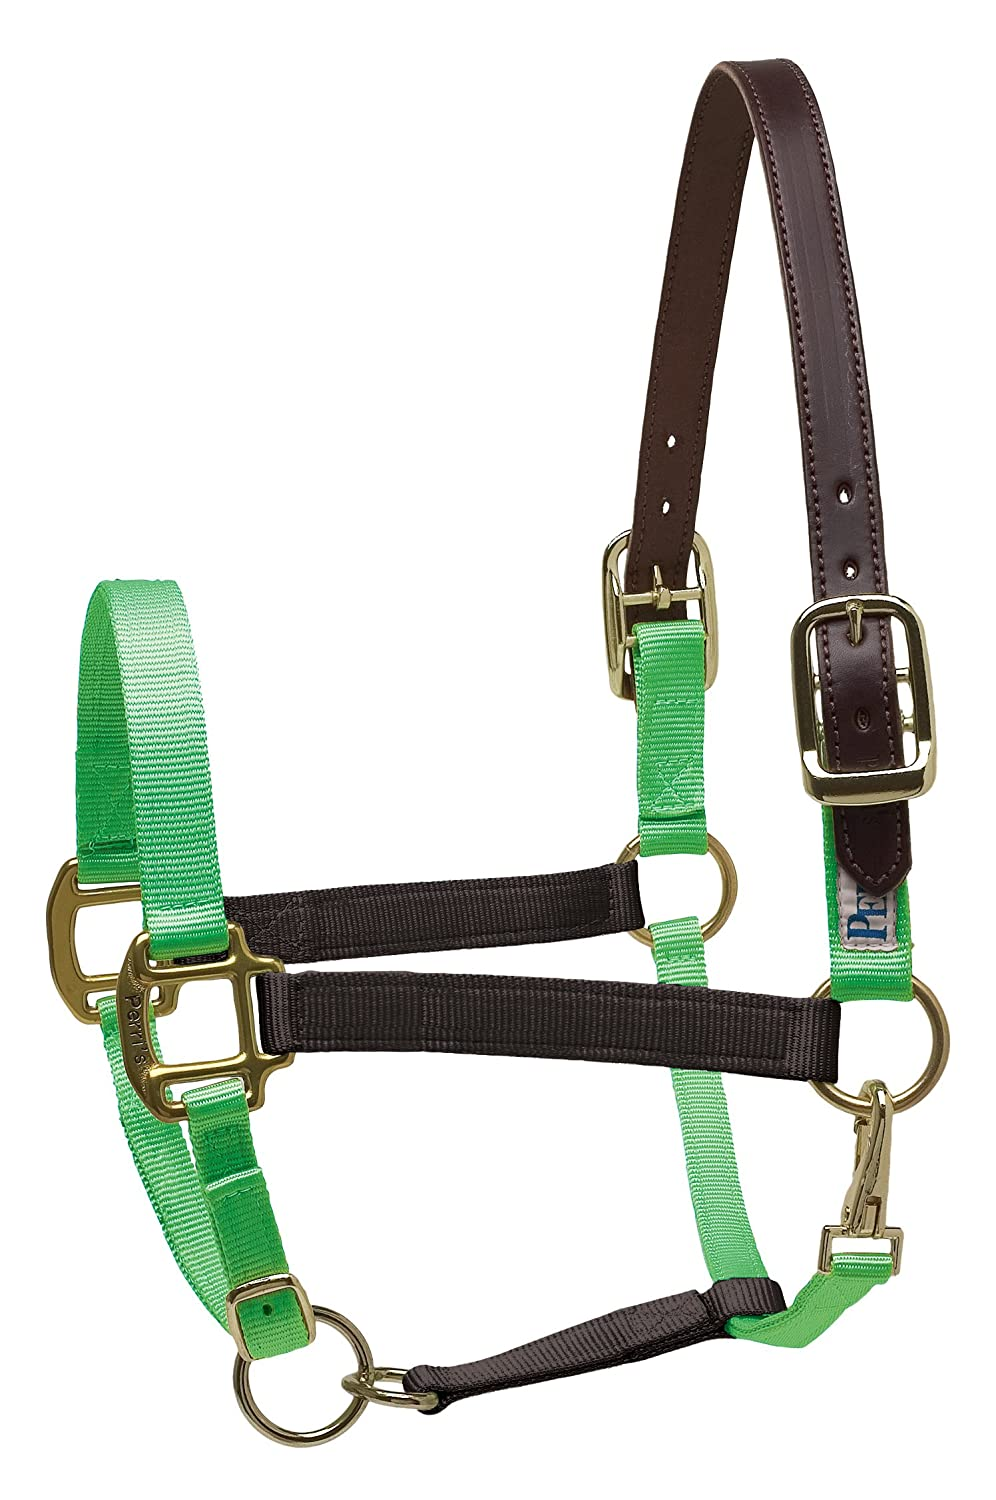 Perri's Safety Halter, Black/Lime, Cob   B00BJLU0VS